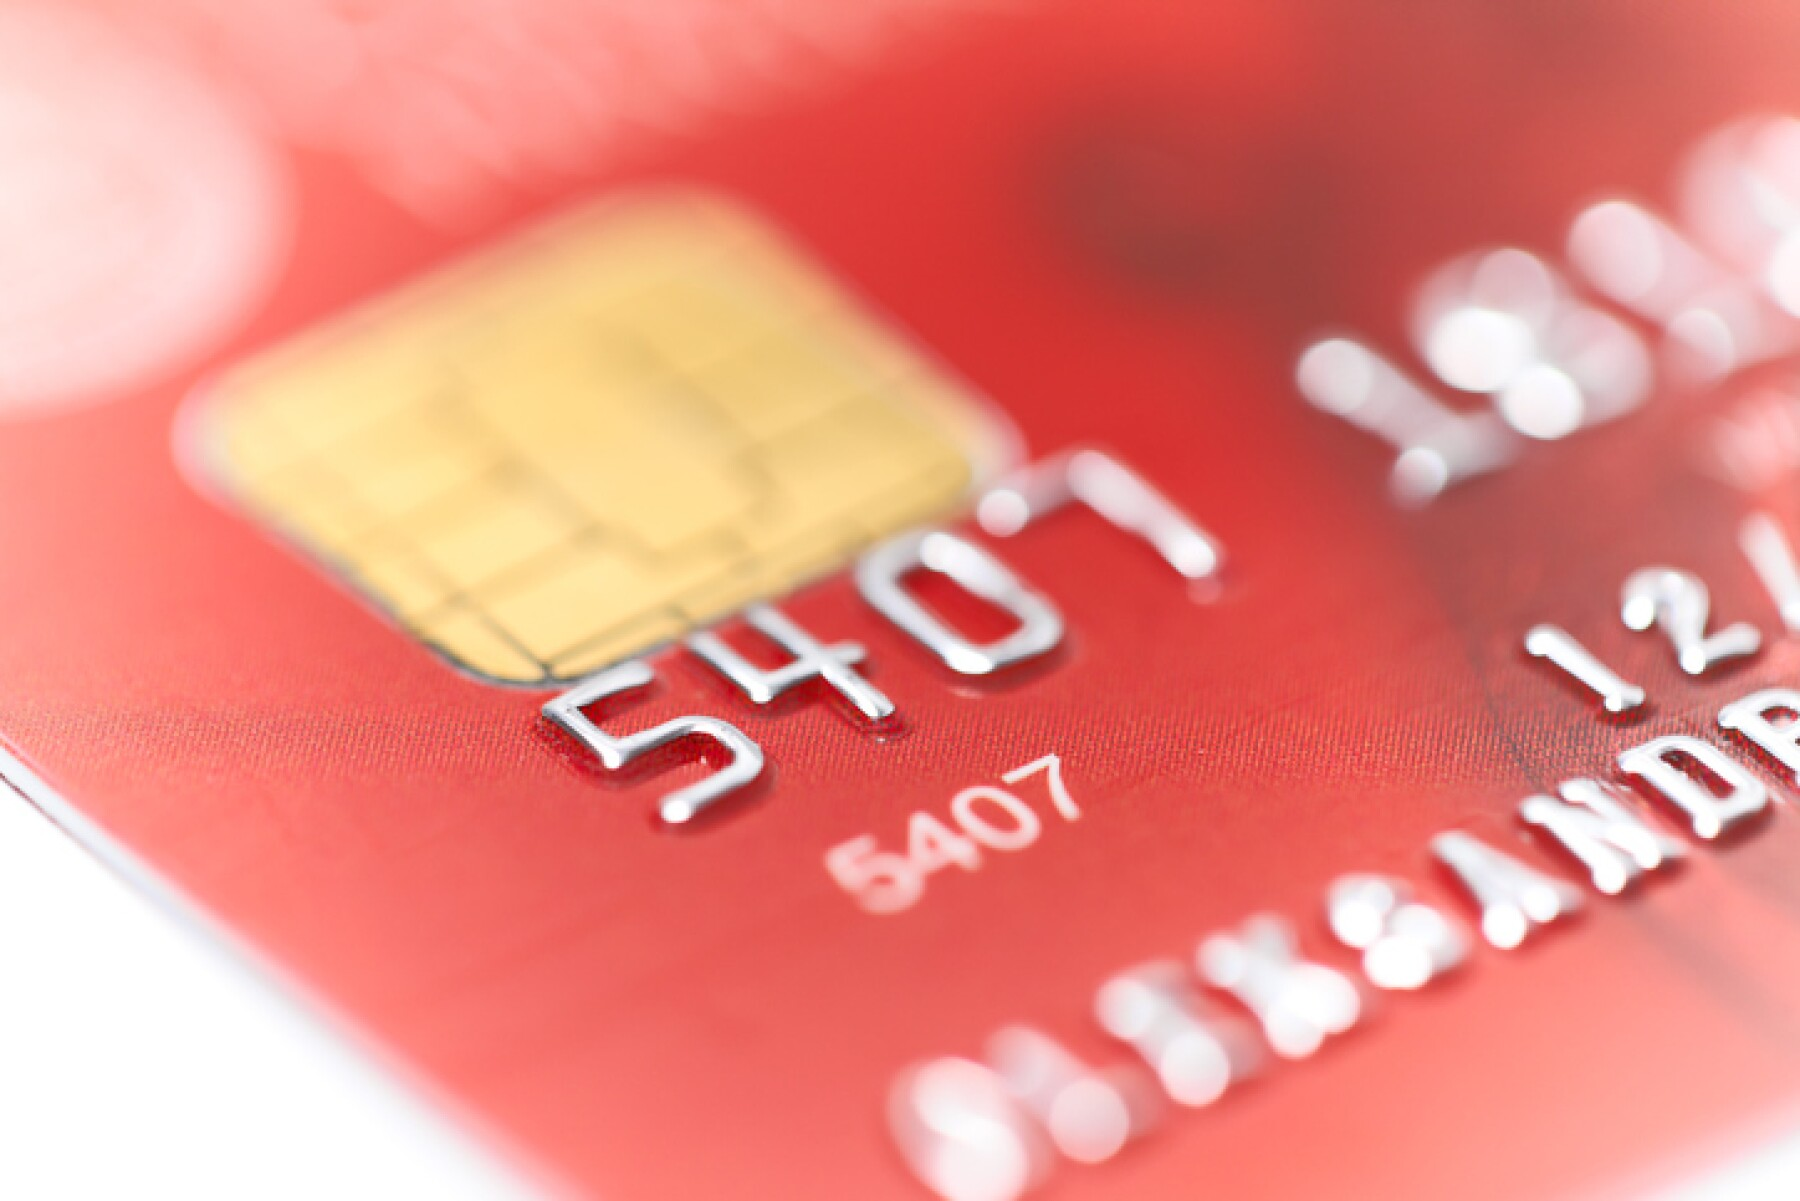 credit card with shallow DOF